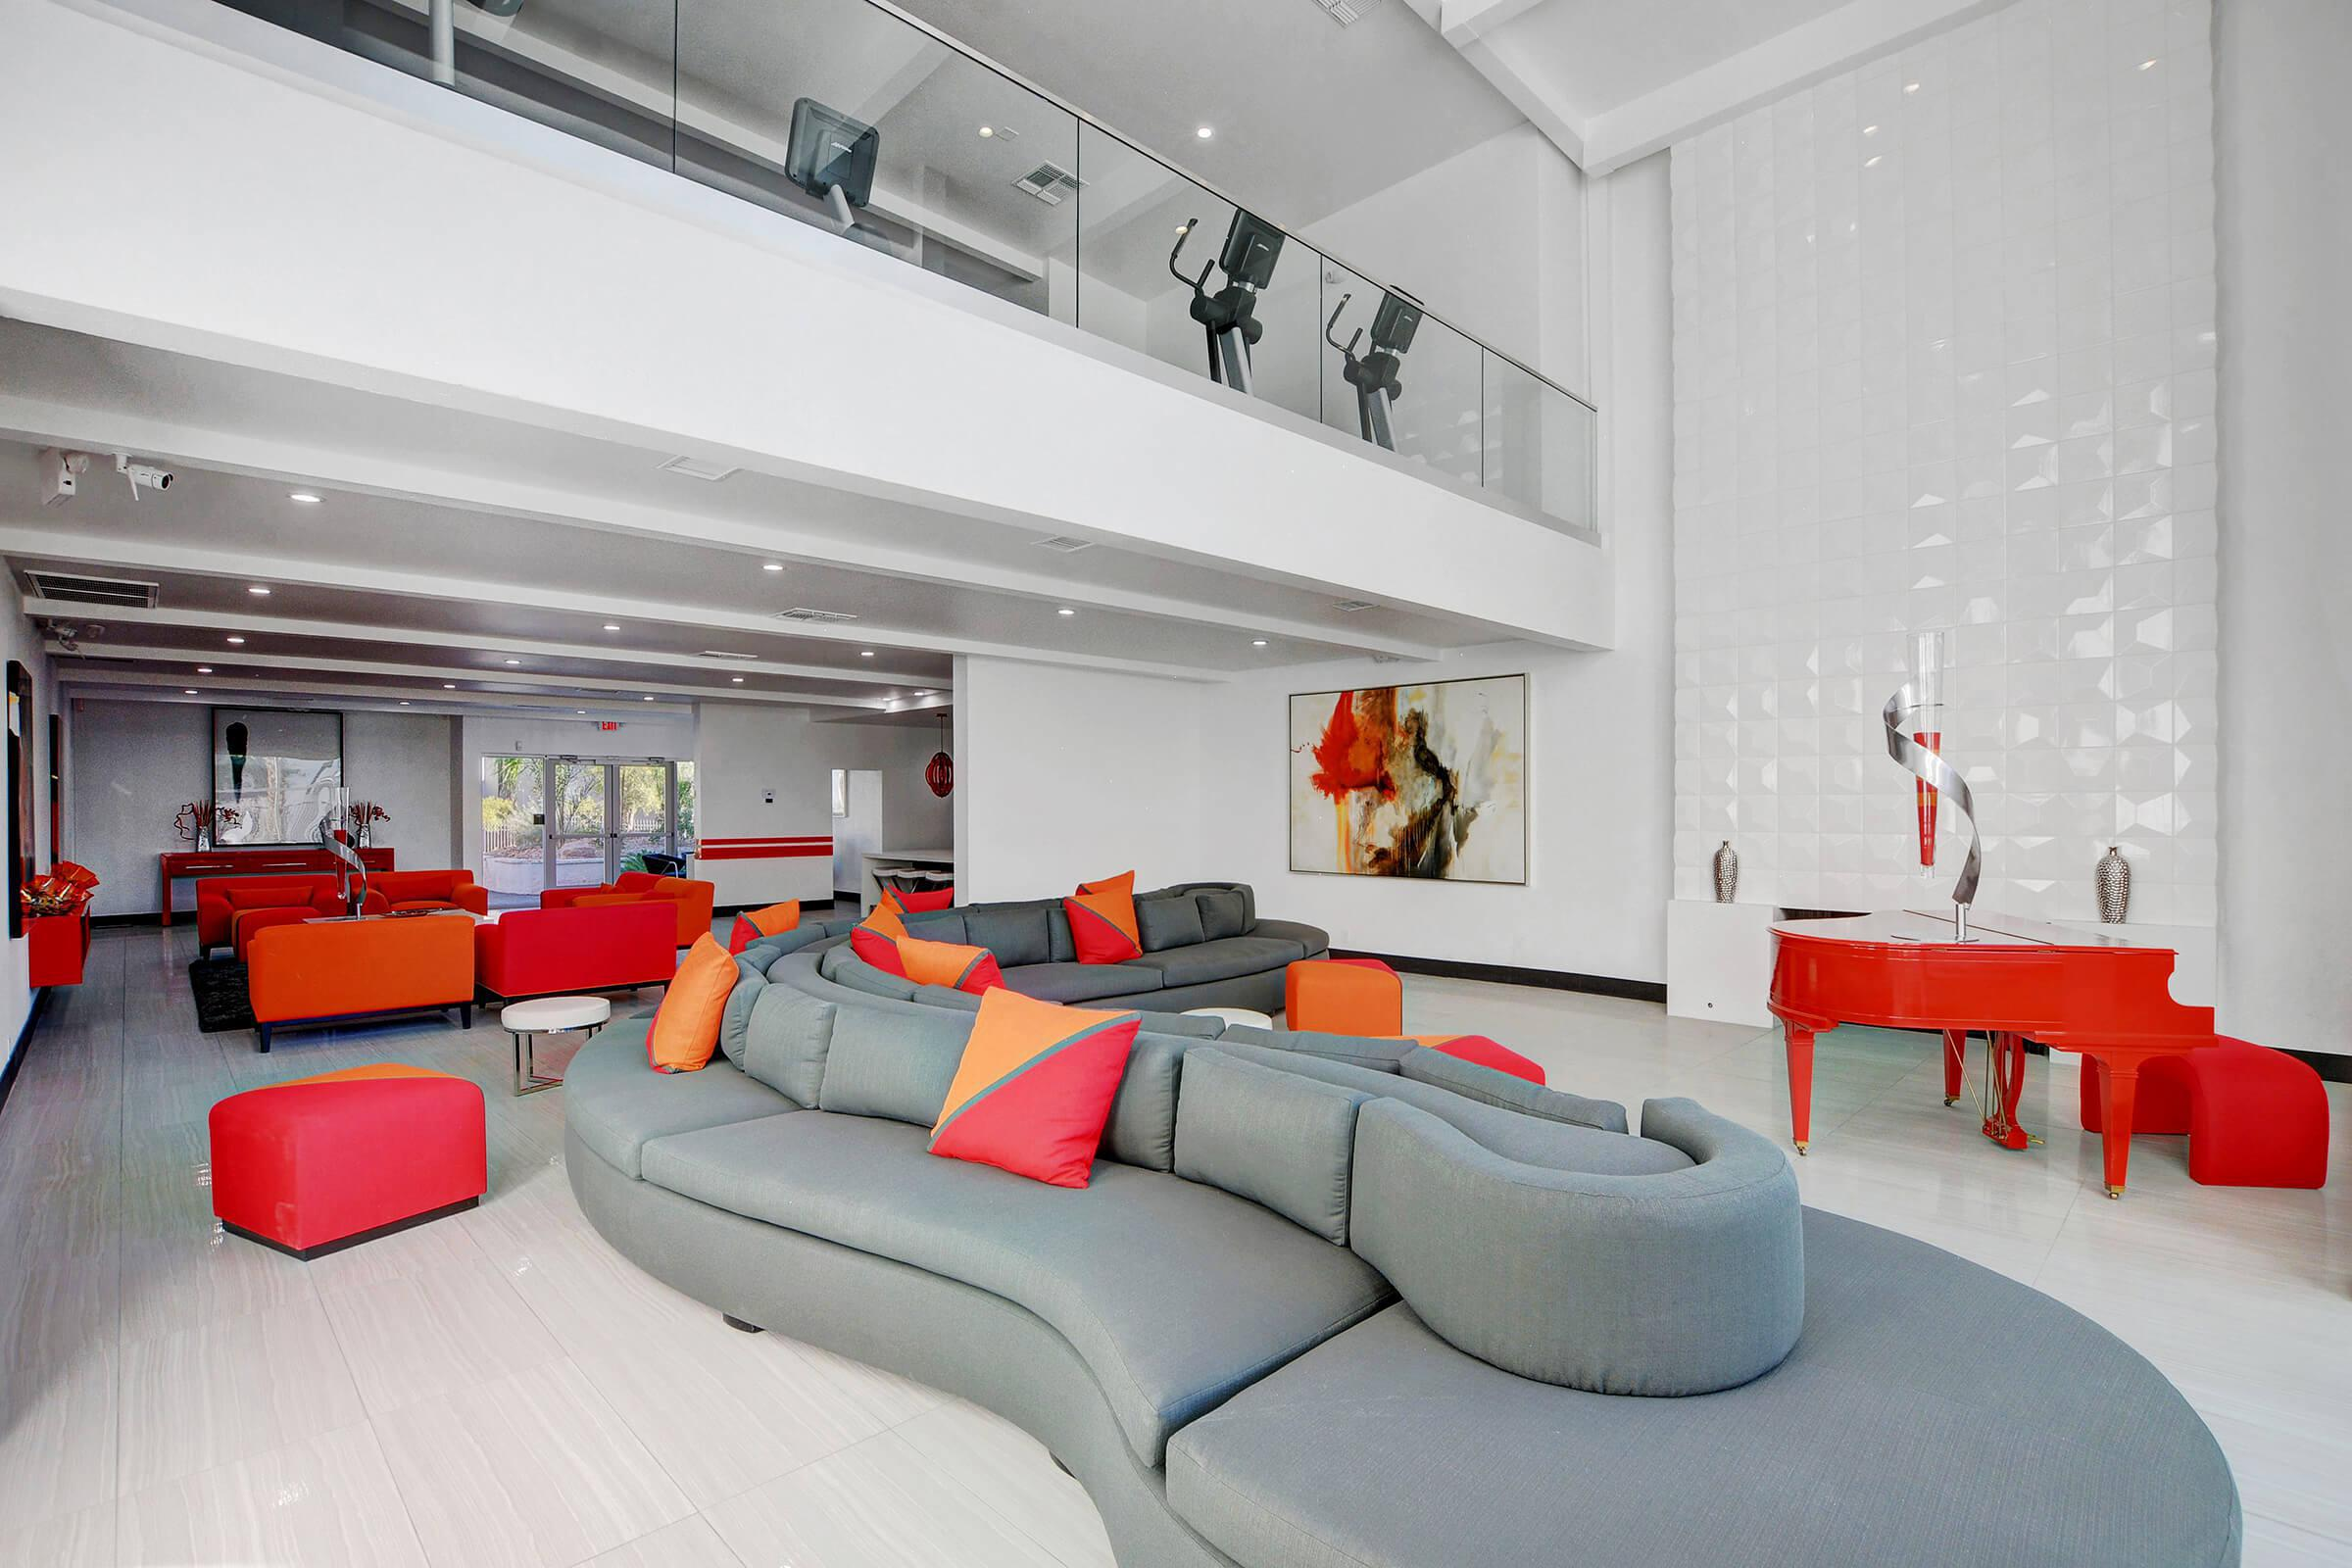 an orange room with red furniture